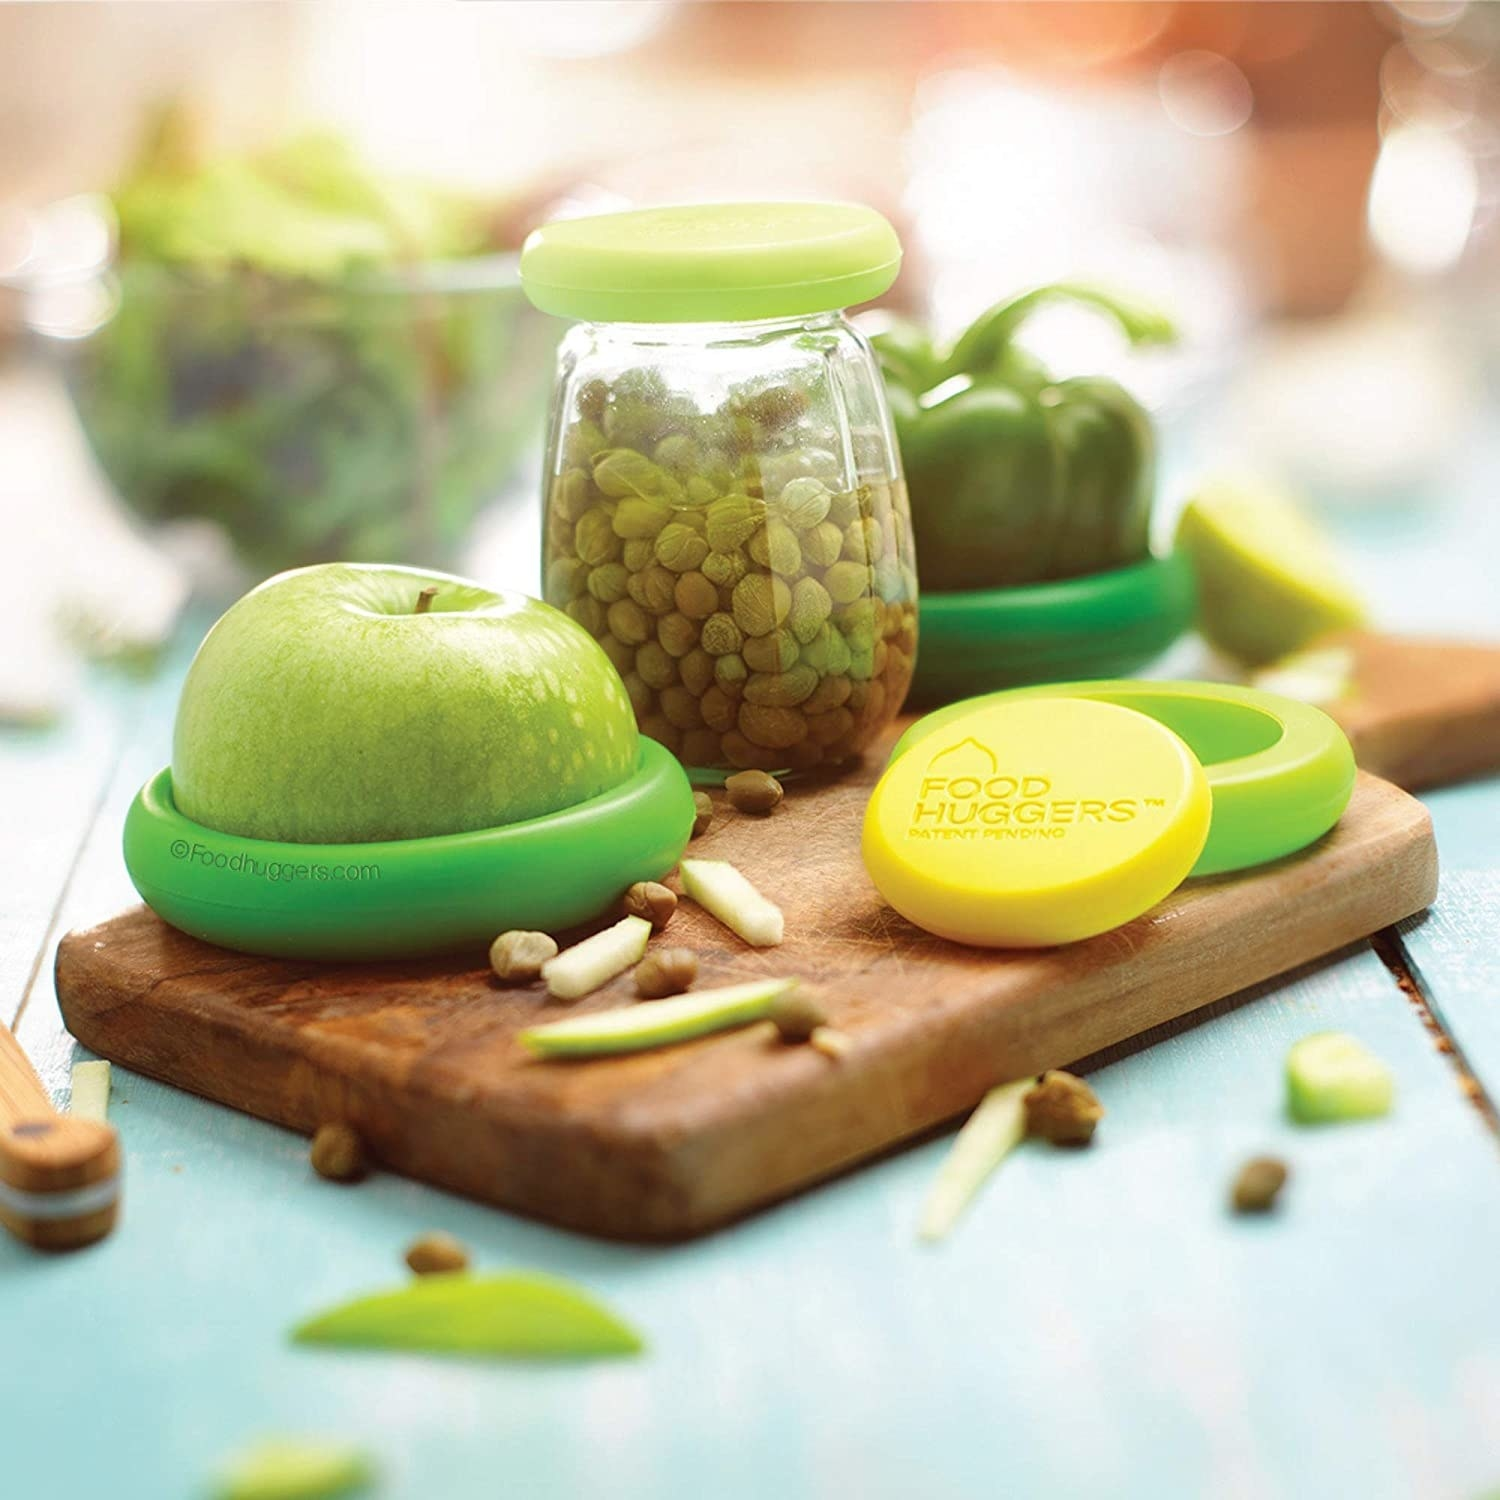 A set of food covers stretched to fit over fresh fruit and a jar of capers